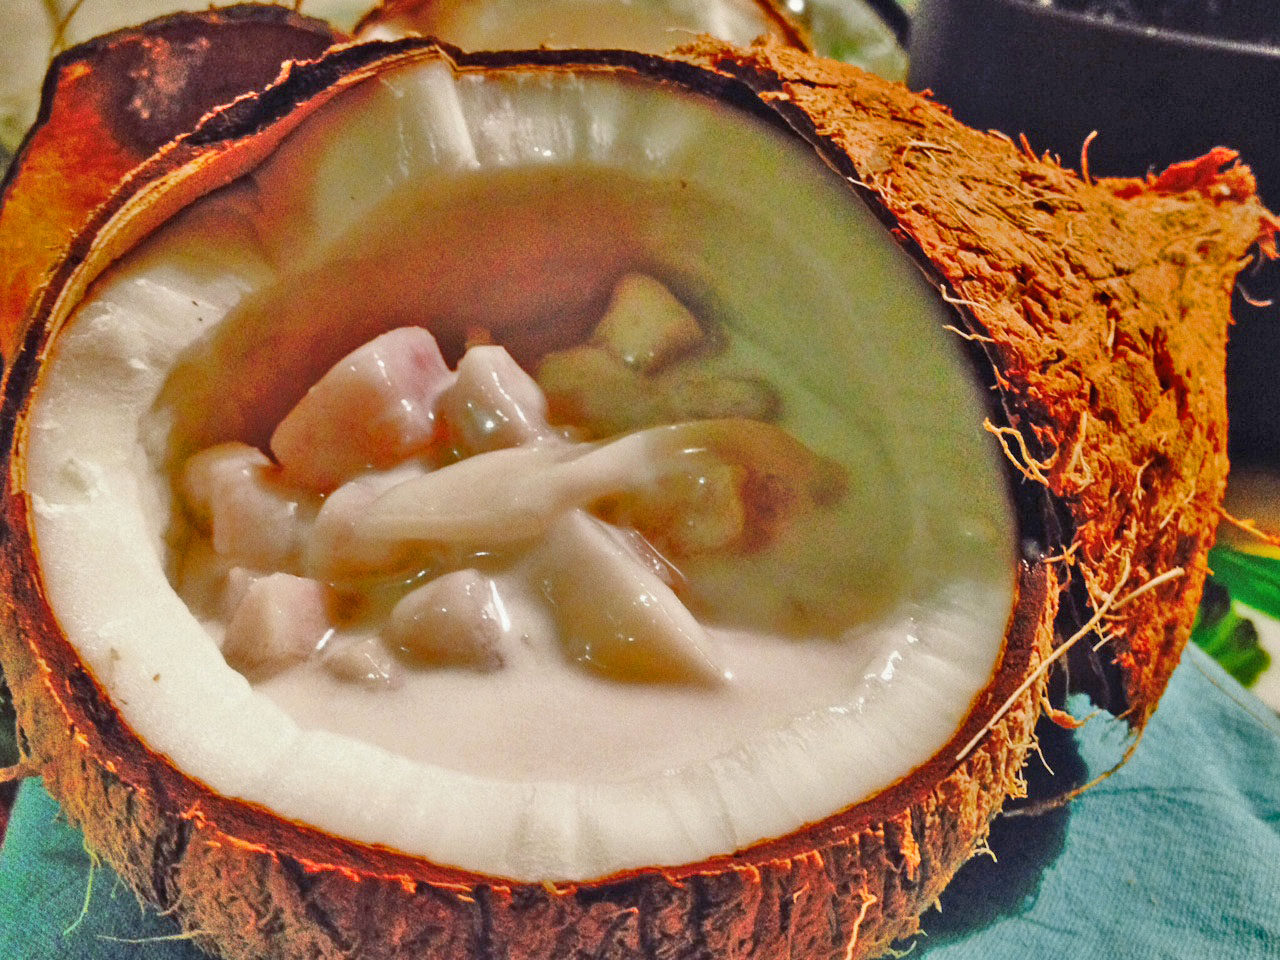 Taro infused in warm coconut milk